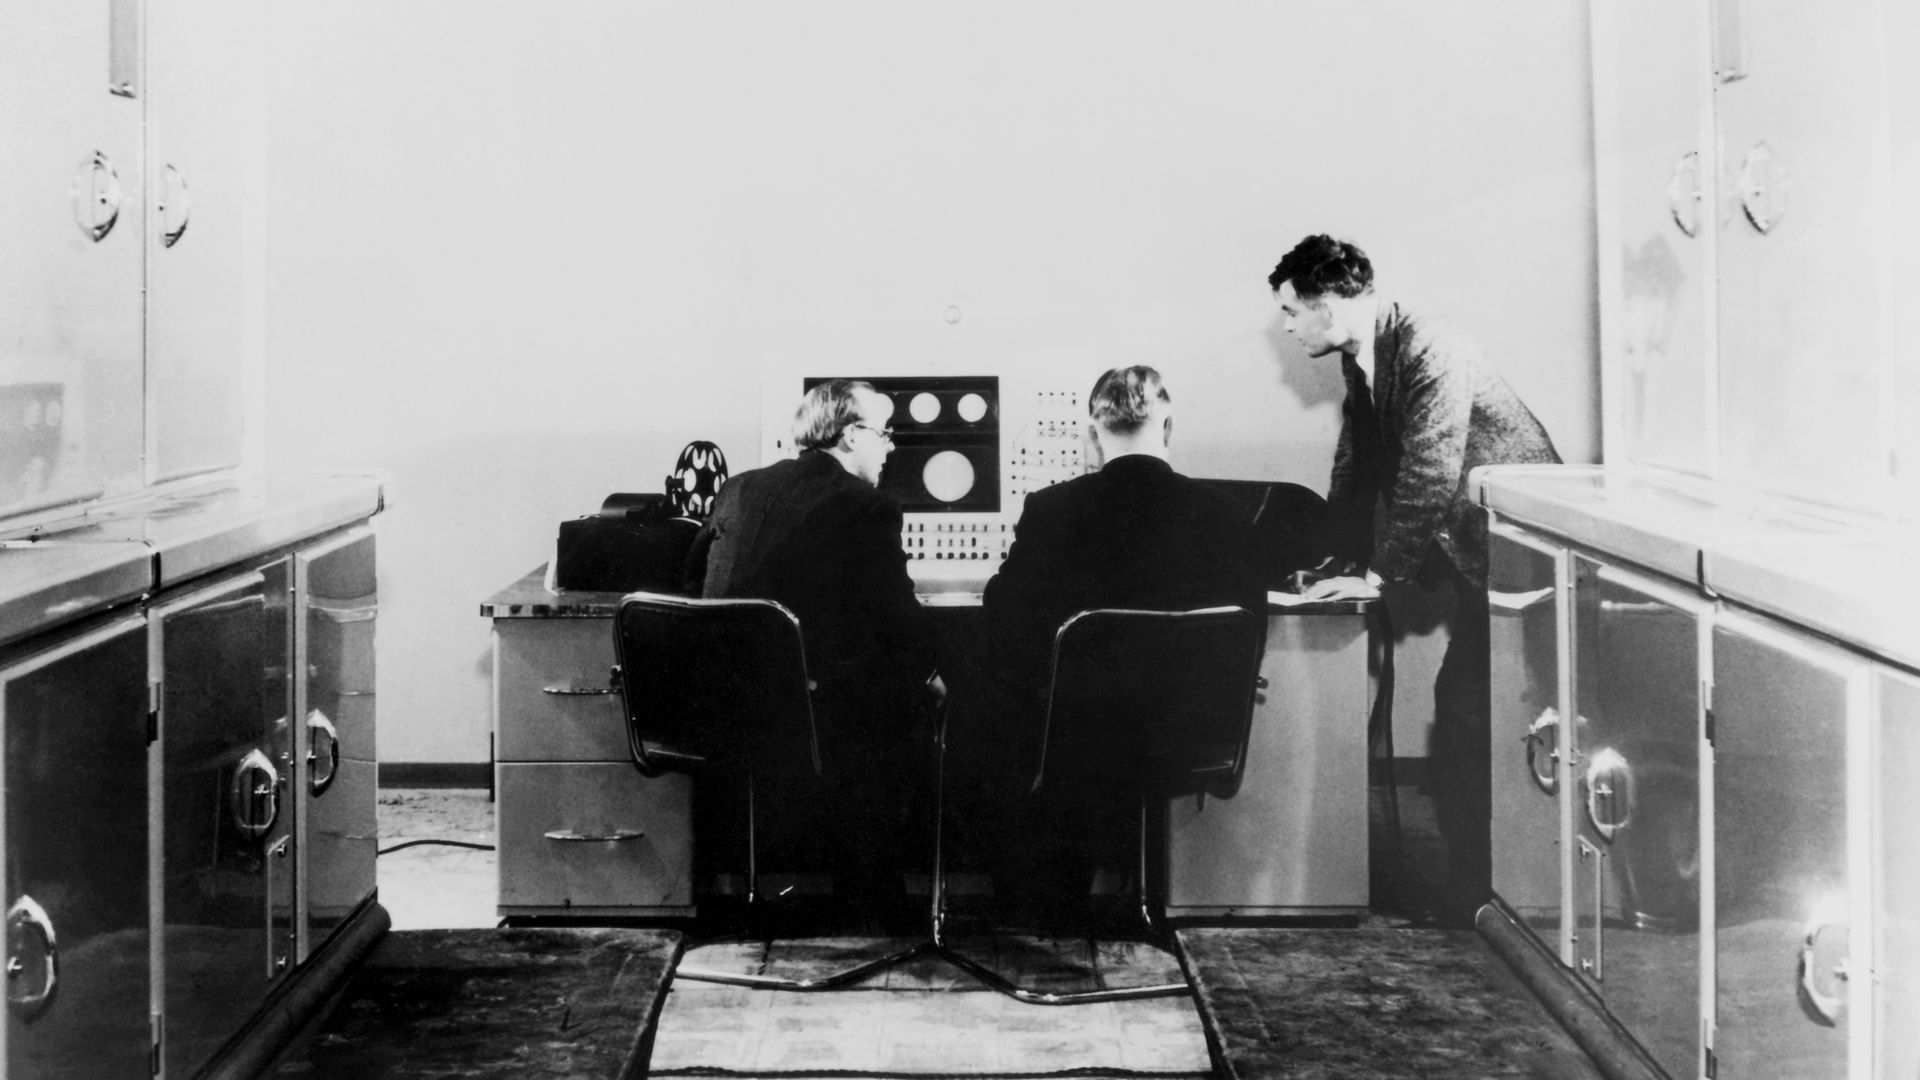 Alan Turing and colleagues working on the Ferranti Mark I Computer, 1951.